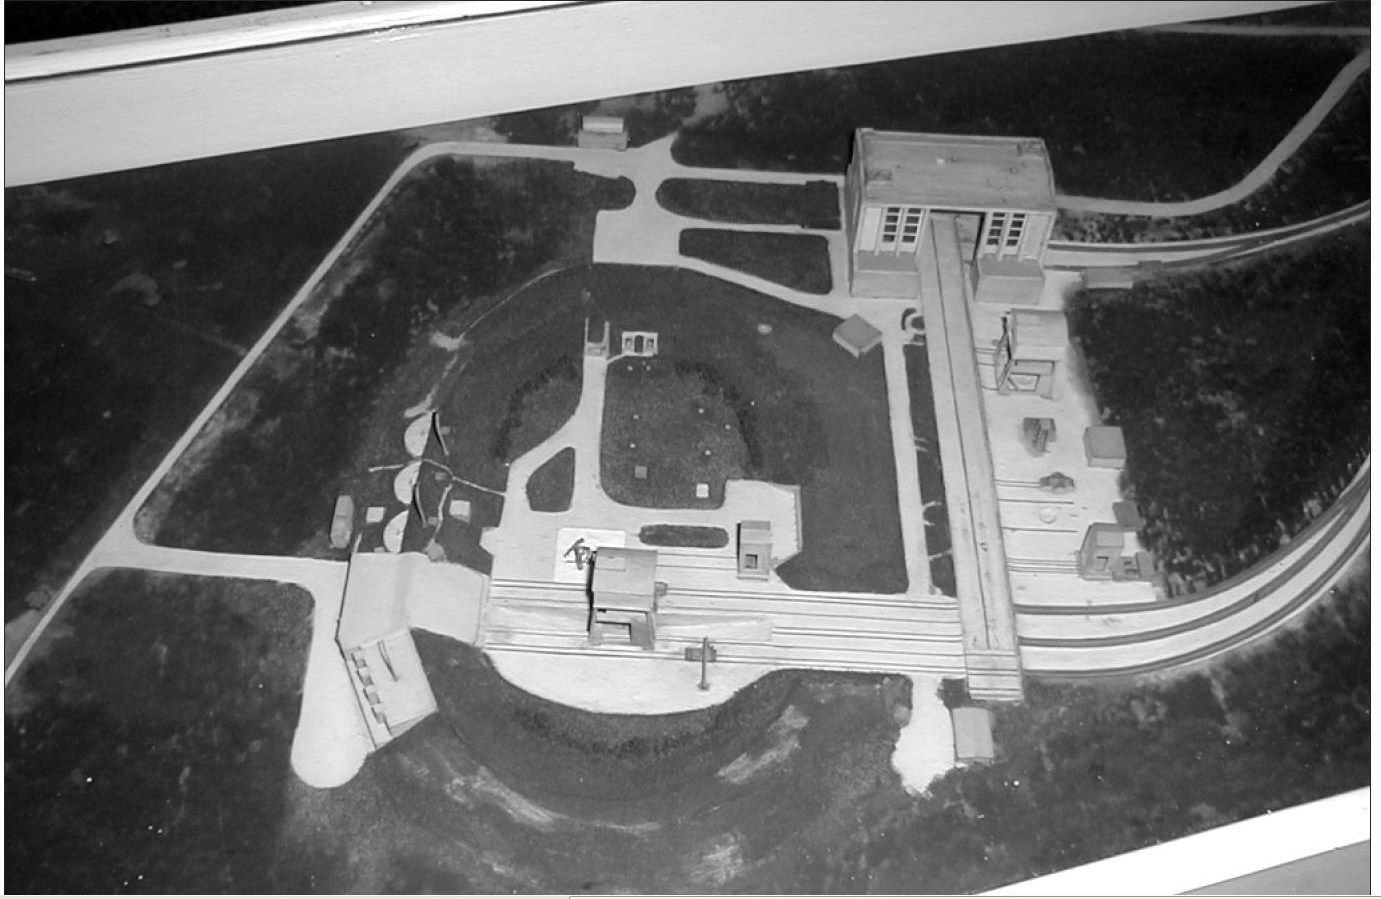 Us army intelligence model of v2 rocket test stand for How many homes were destroyed in germany in ww2